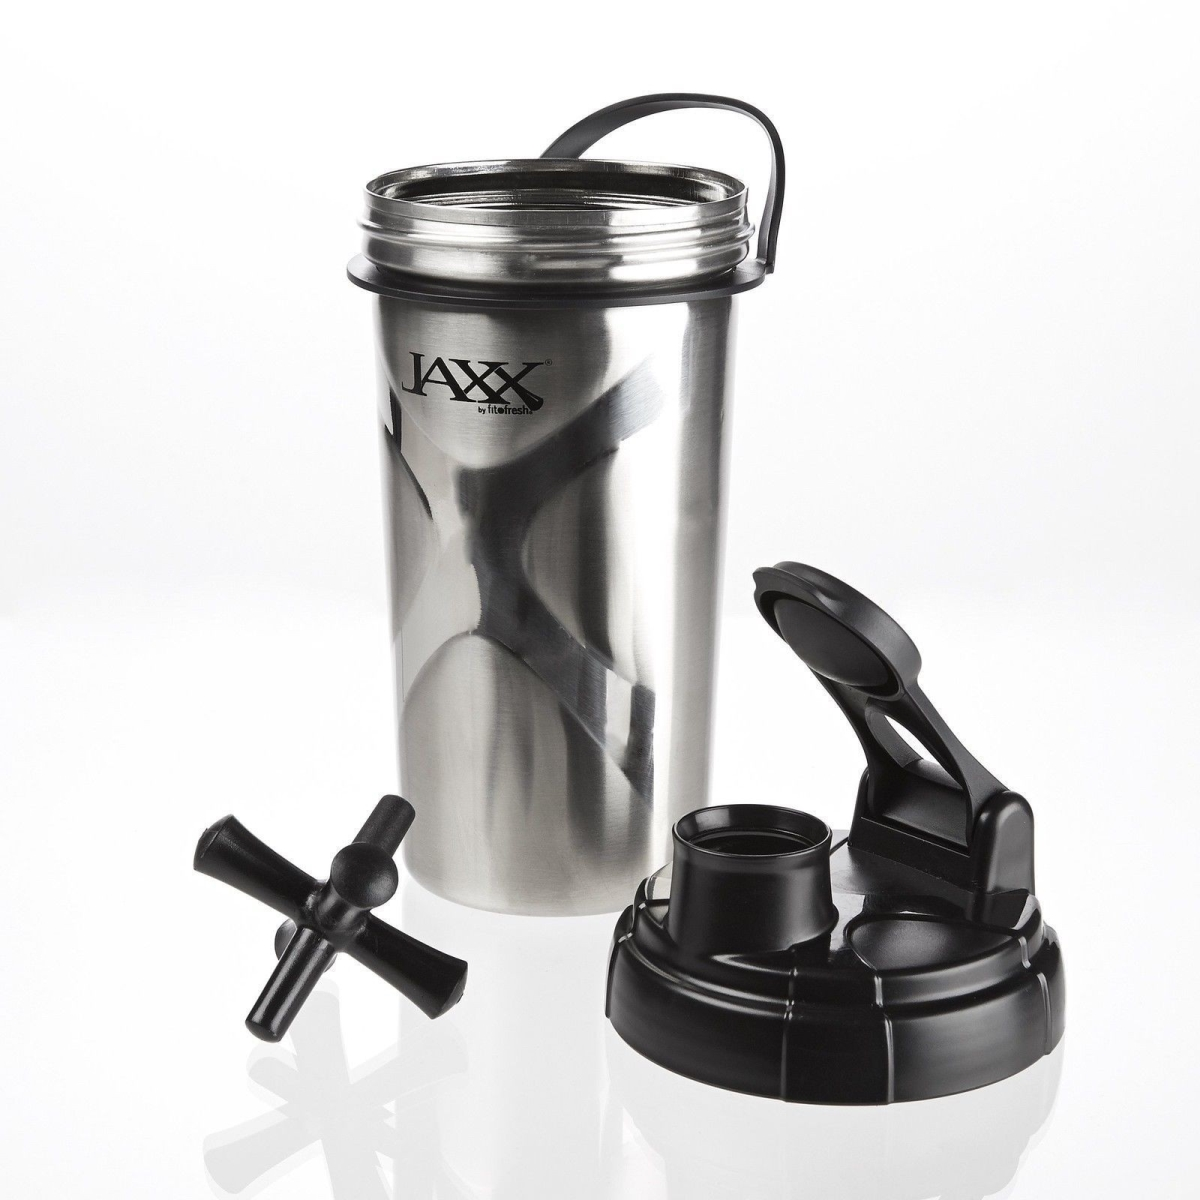 fIT & FRESH 784FF JAXX 24oz STAINLESS STEEL SHAKER CUP 2PC